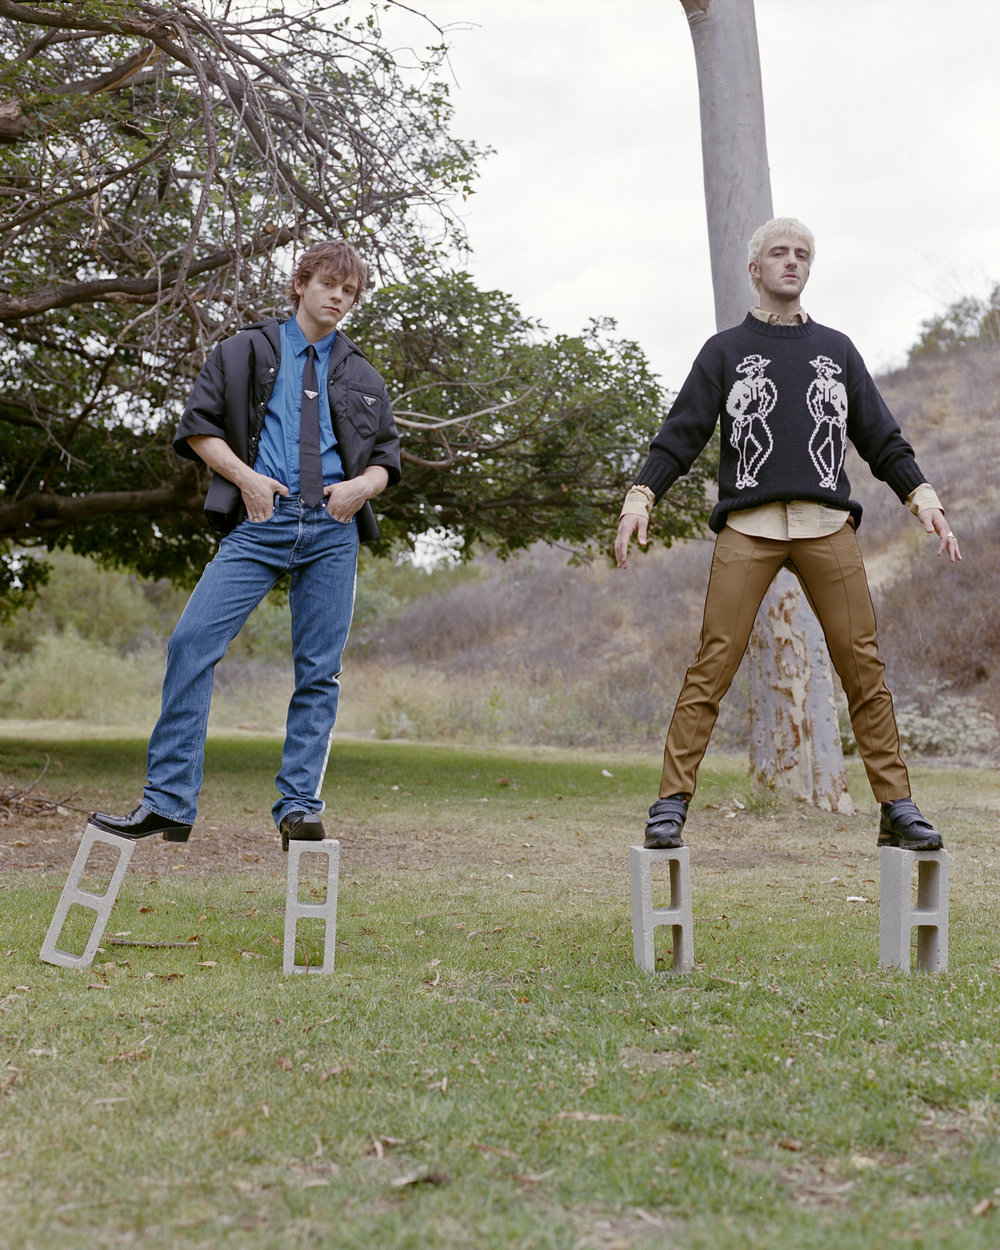 Left to right: Ross wears  PRADA  jacket, shirt, and tie and  CALVIN KLEIN JEANS  jeans and boots. Rocky wears  OVADIA & SONS  sweater and pants,  LINDER  shirt, and  ERMENEGILDO ZEGNA COUTURE  shoes.